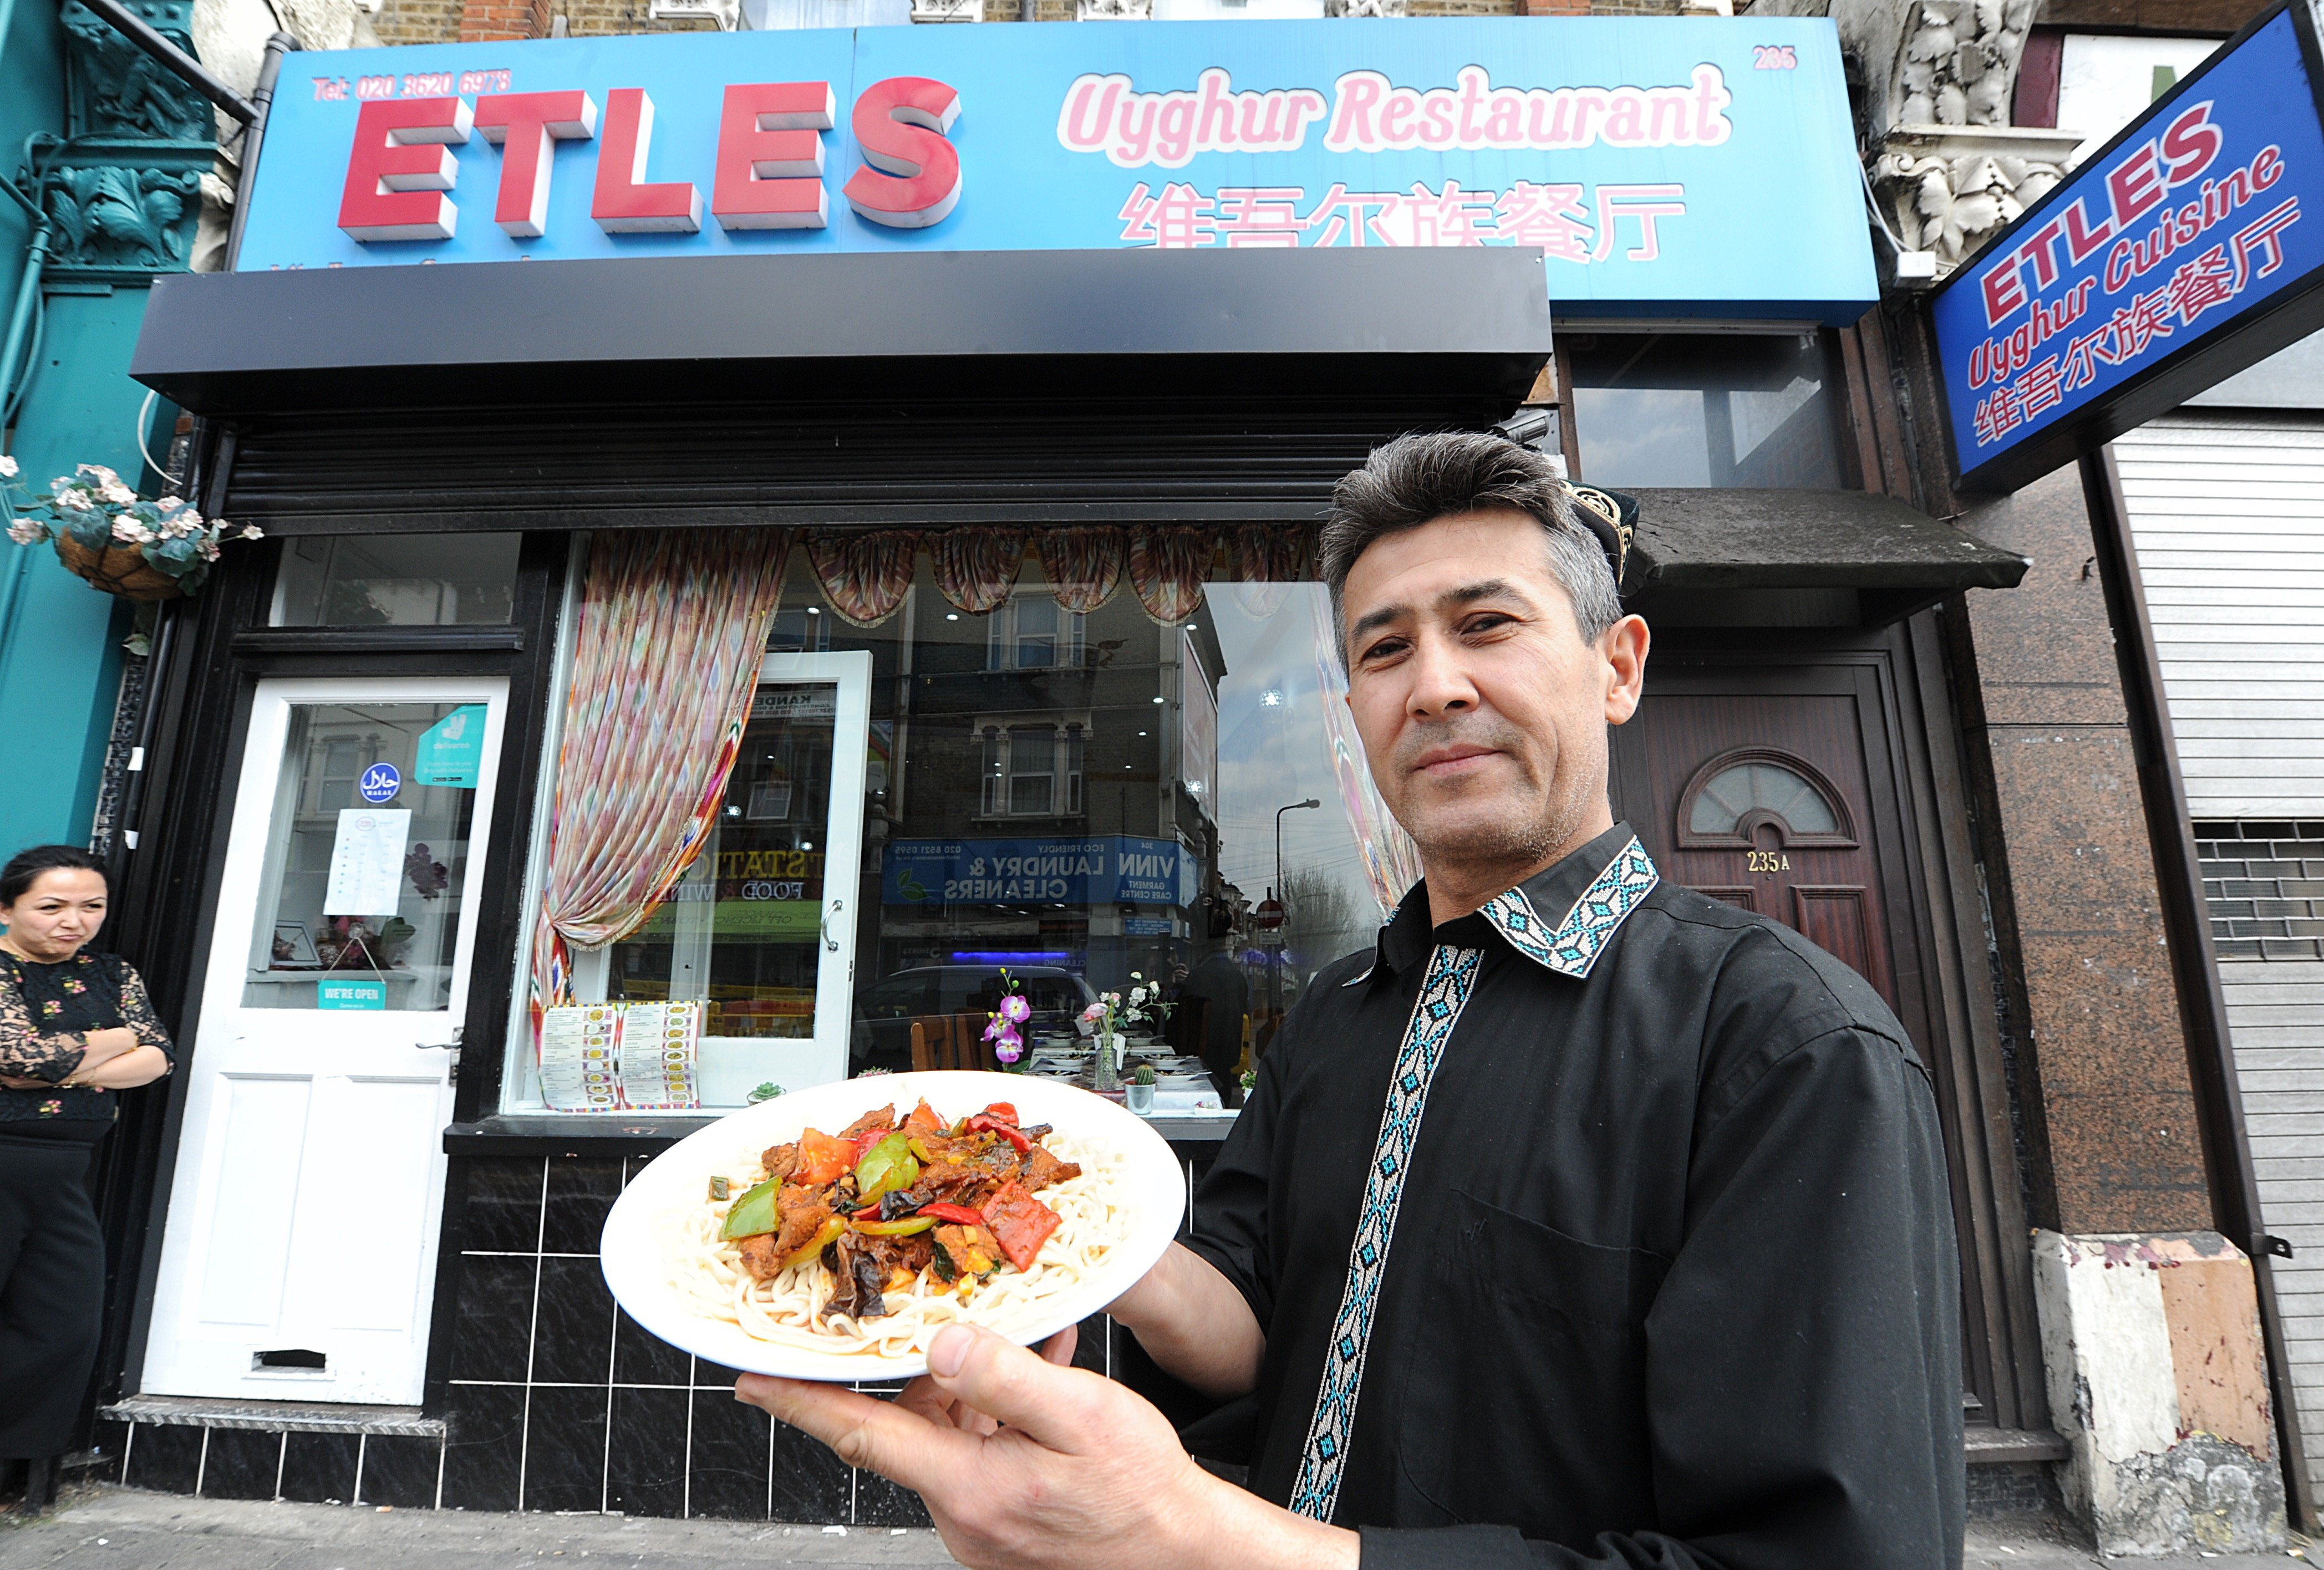 Xinjiang cuisine in London: for Uygur restaurants' owners